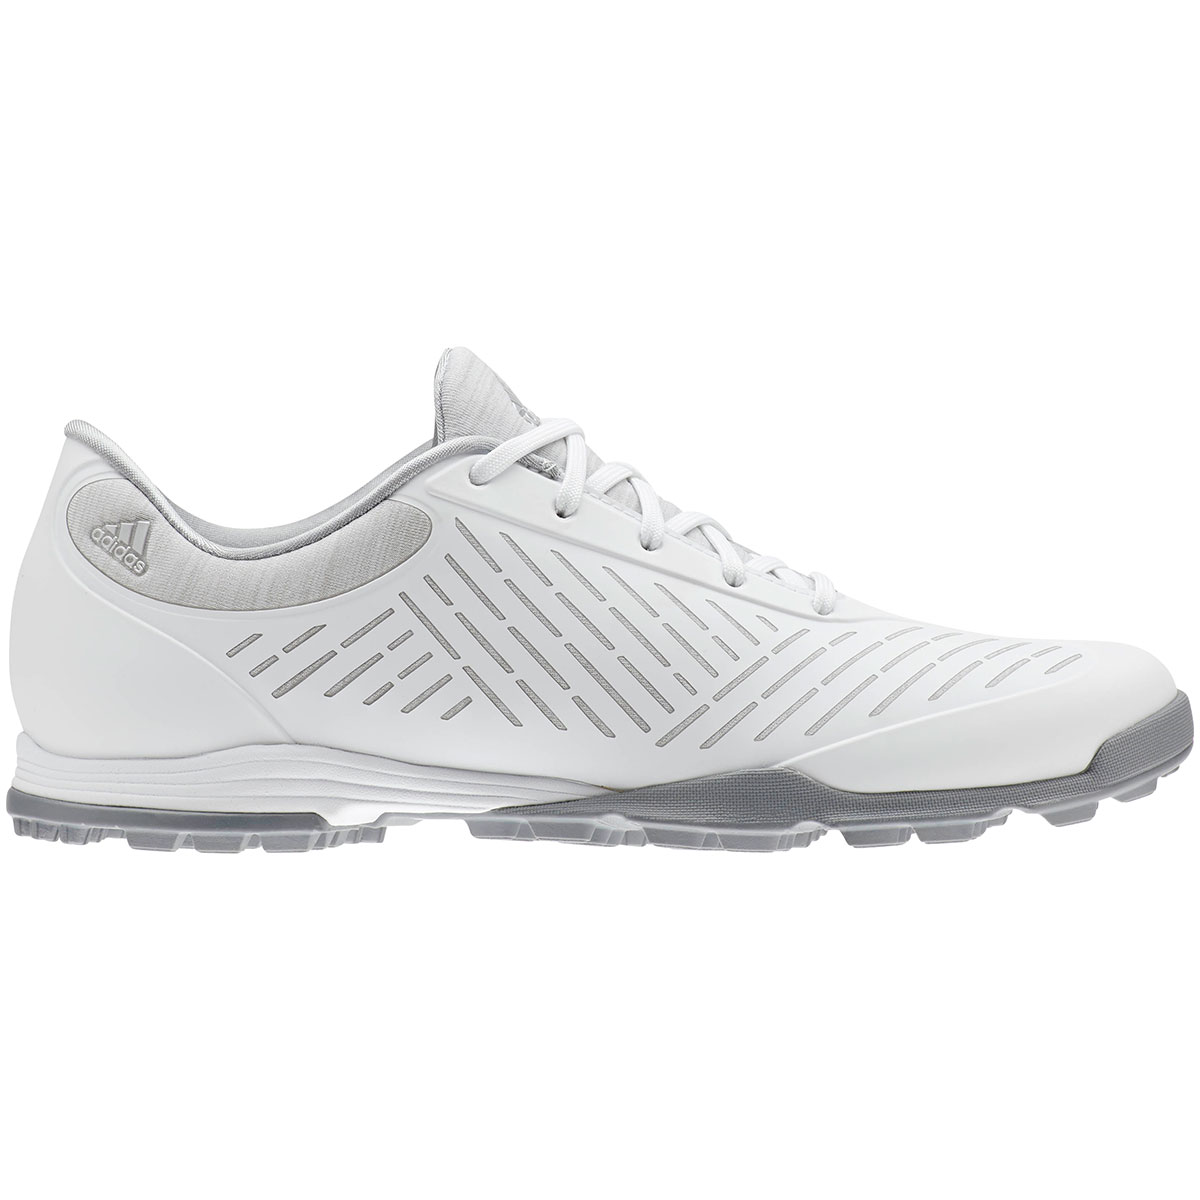 Adidas Women's Adipure Sport 2.0 Golf Shoes